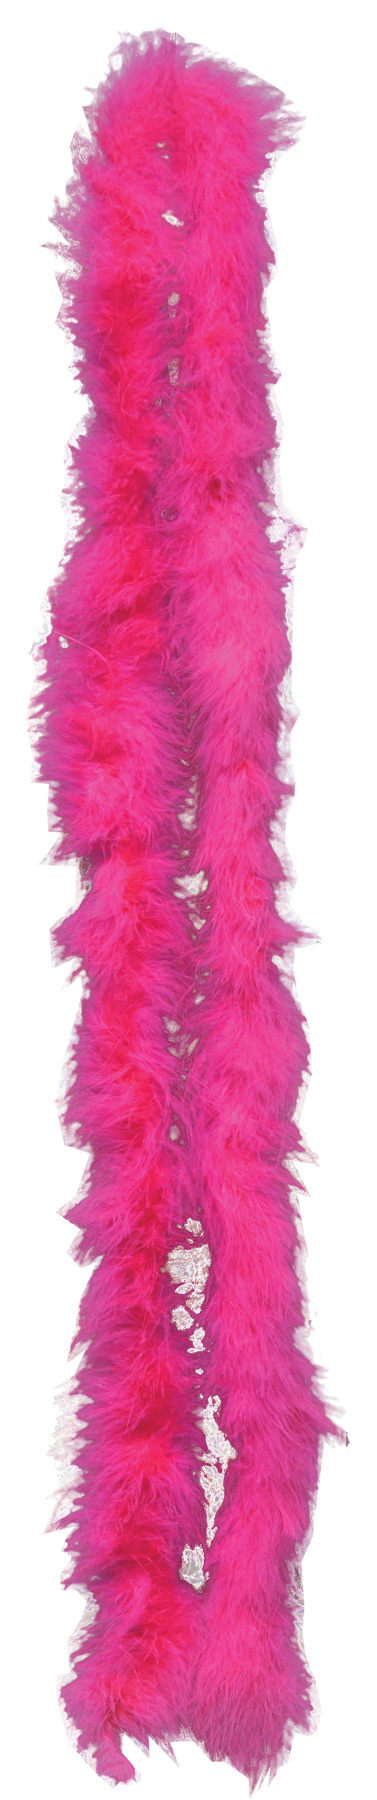 Featured Image for 6′ Marabou Boa